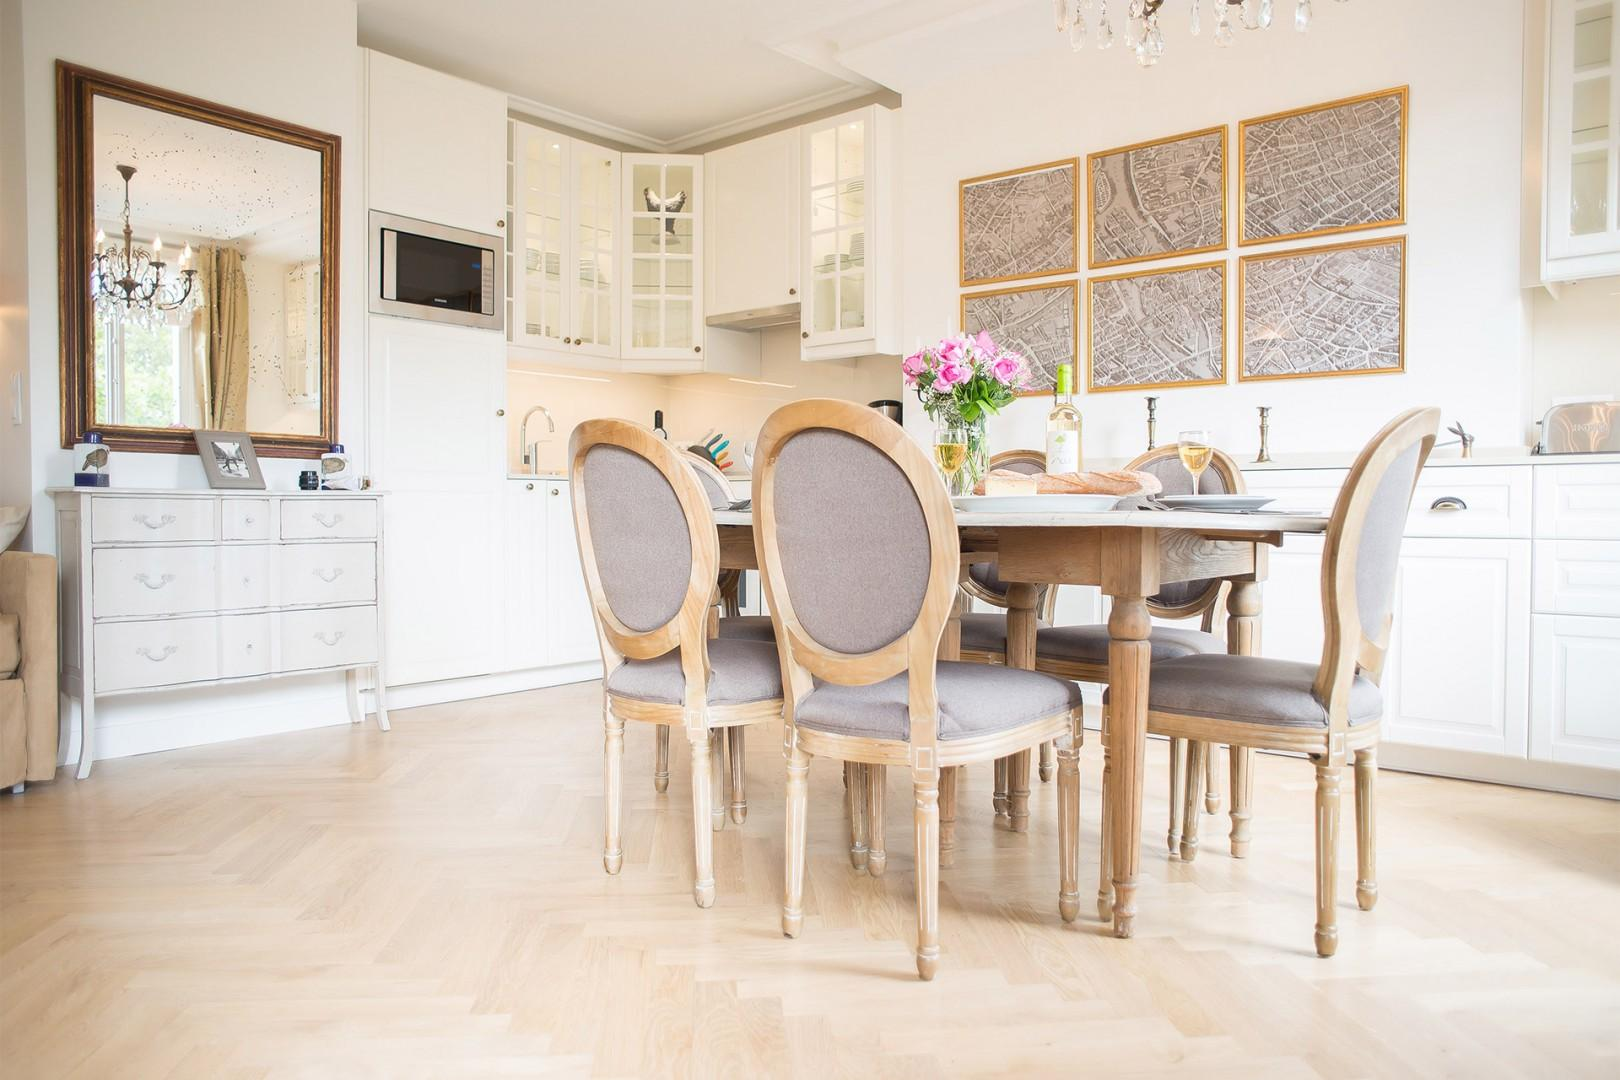 The open kitchen and dining area has an airy feel.